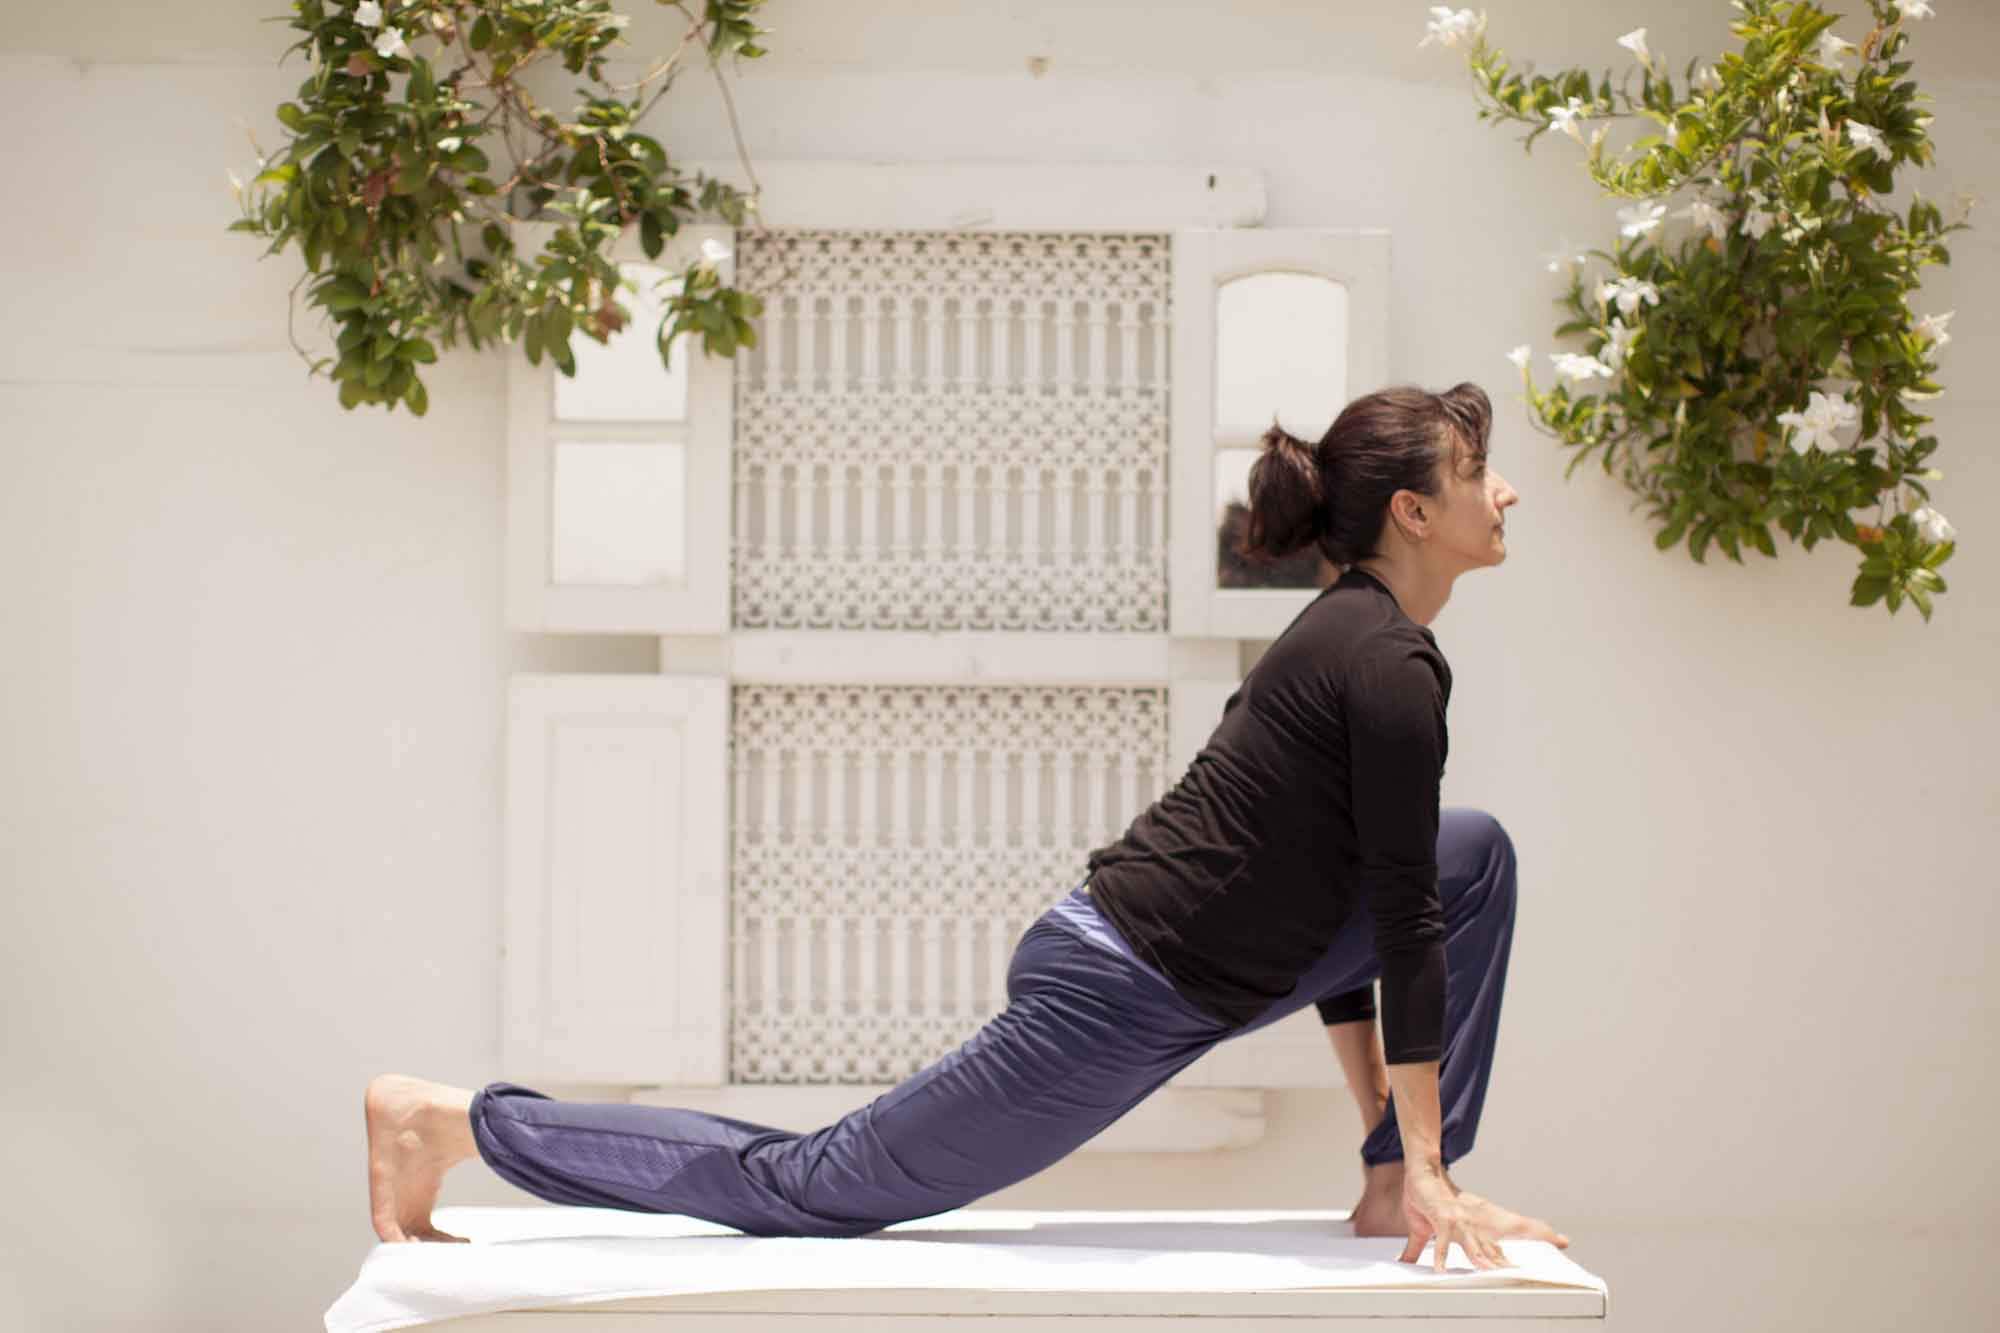 Ashwa Sanchalasana is the Pourth Posture of Sun Salutation. It is also called THE EQUESTRIAN POSE.